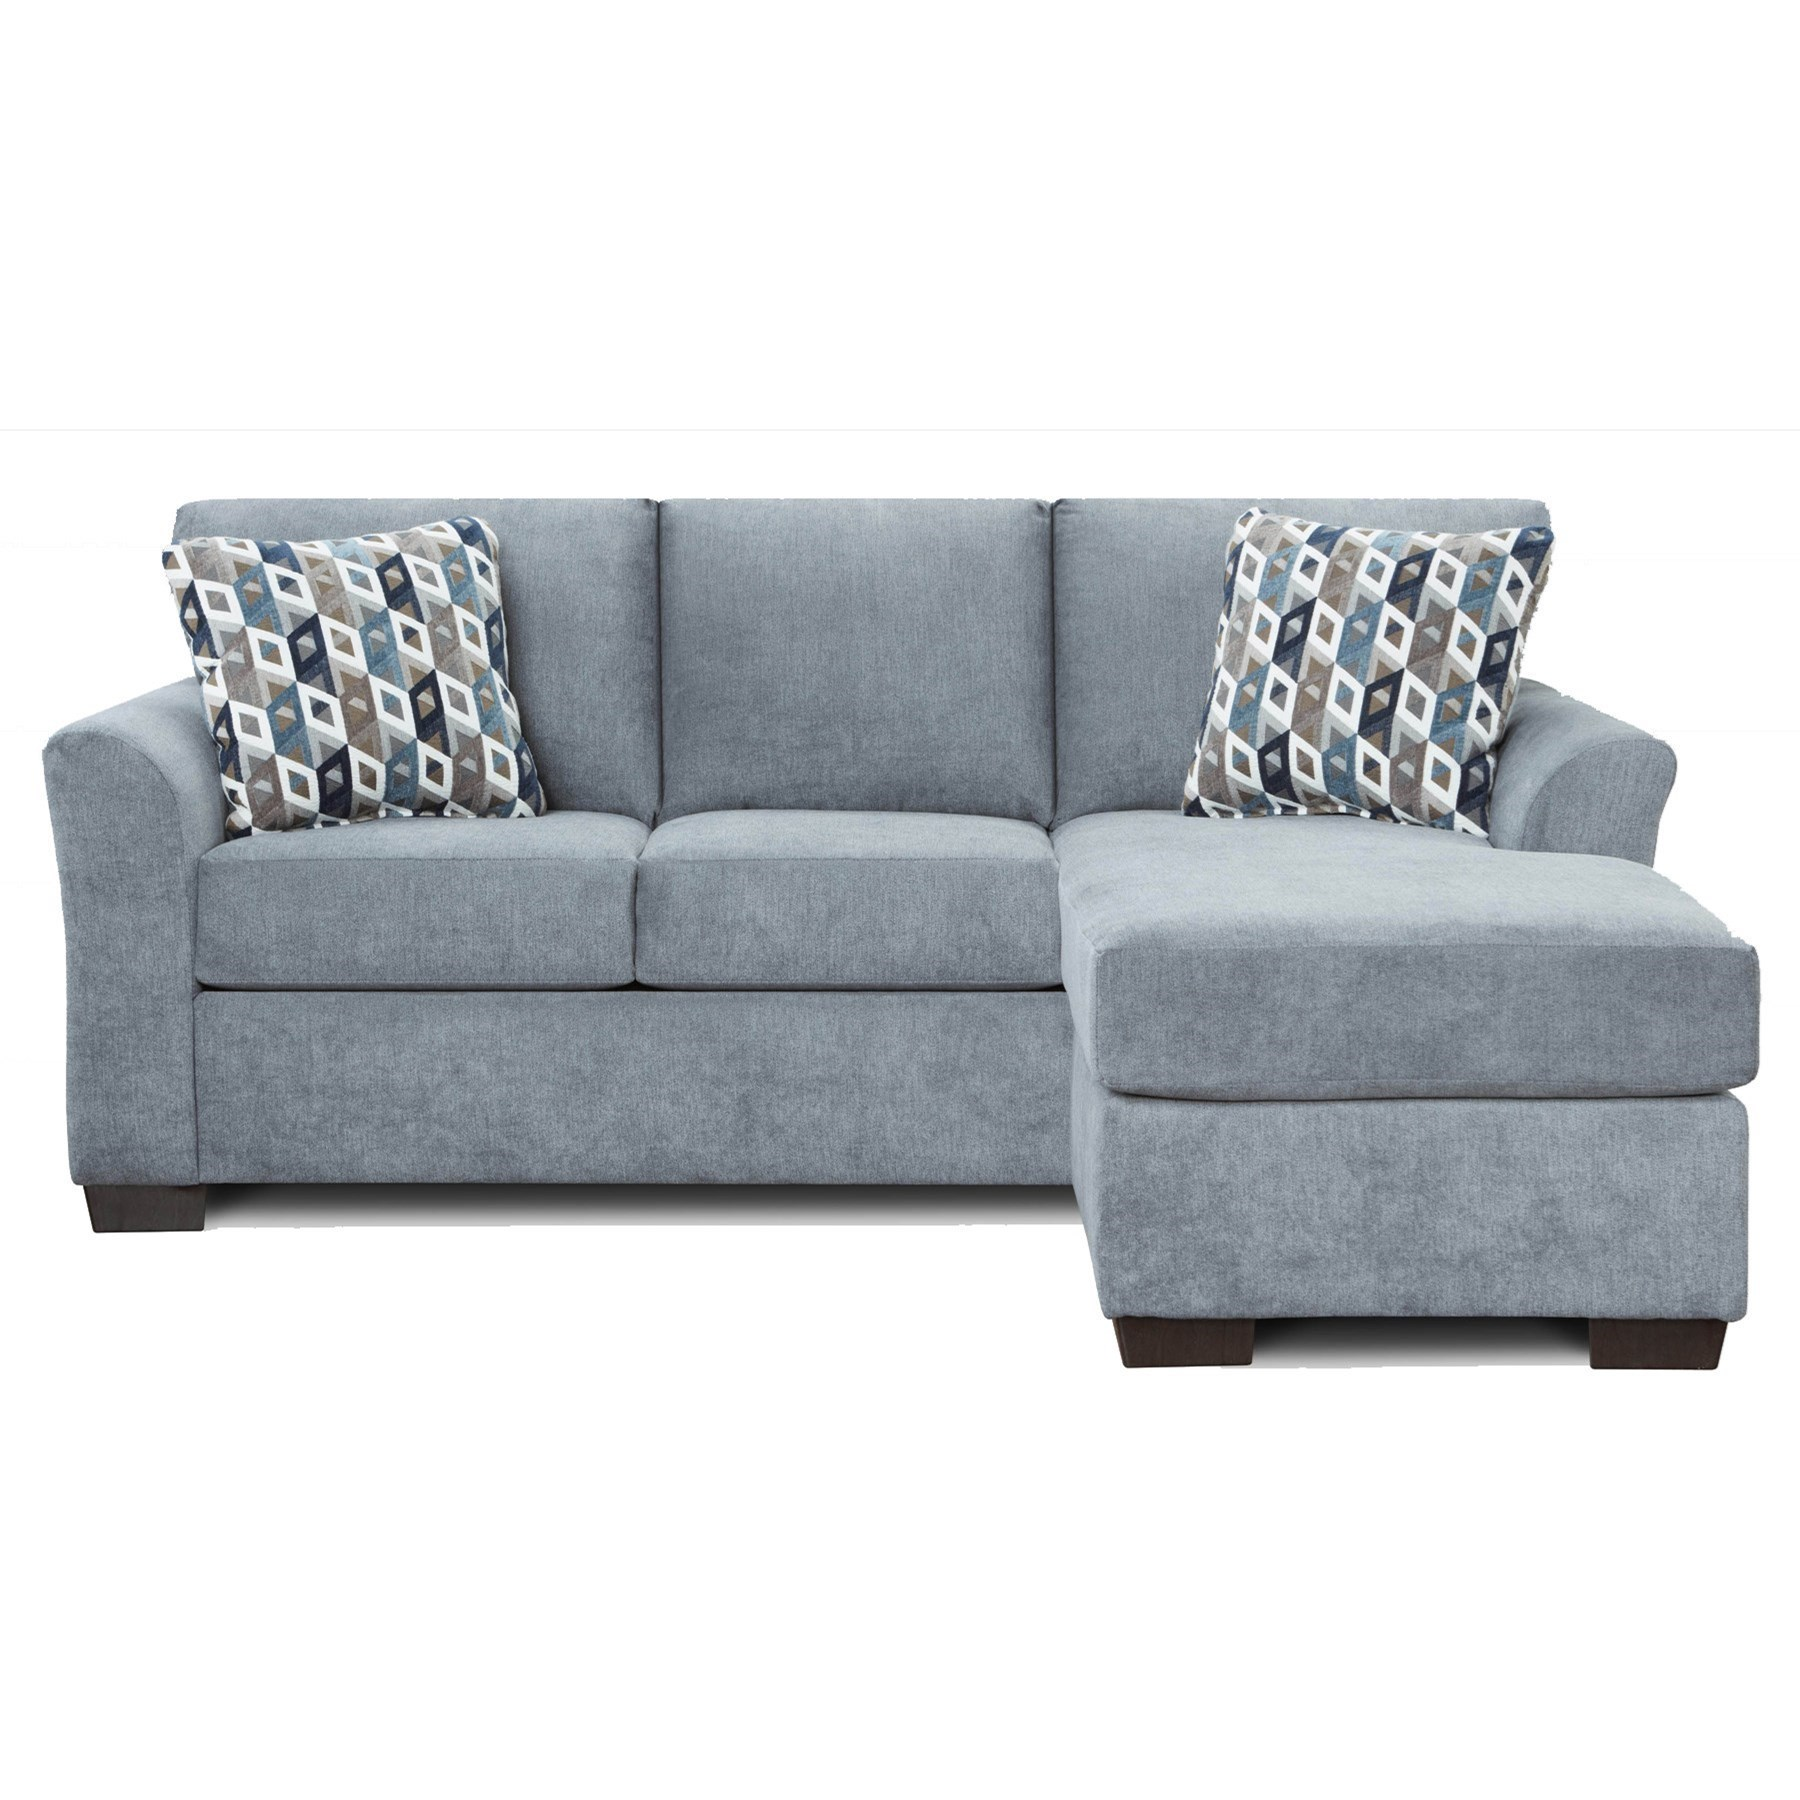 superb Affordable Sleeper Sofa Part - 11: Affordable Furniture Cosmopolitan 3900Queen Sleeper Sofa with Chaise ...